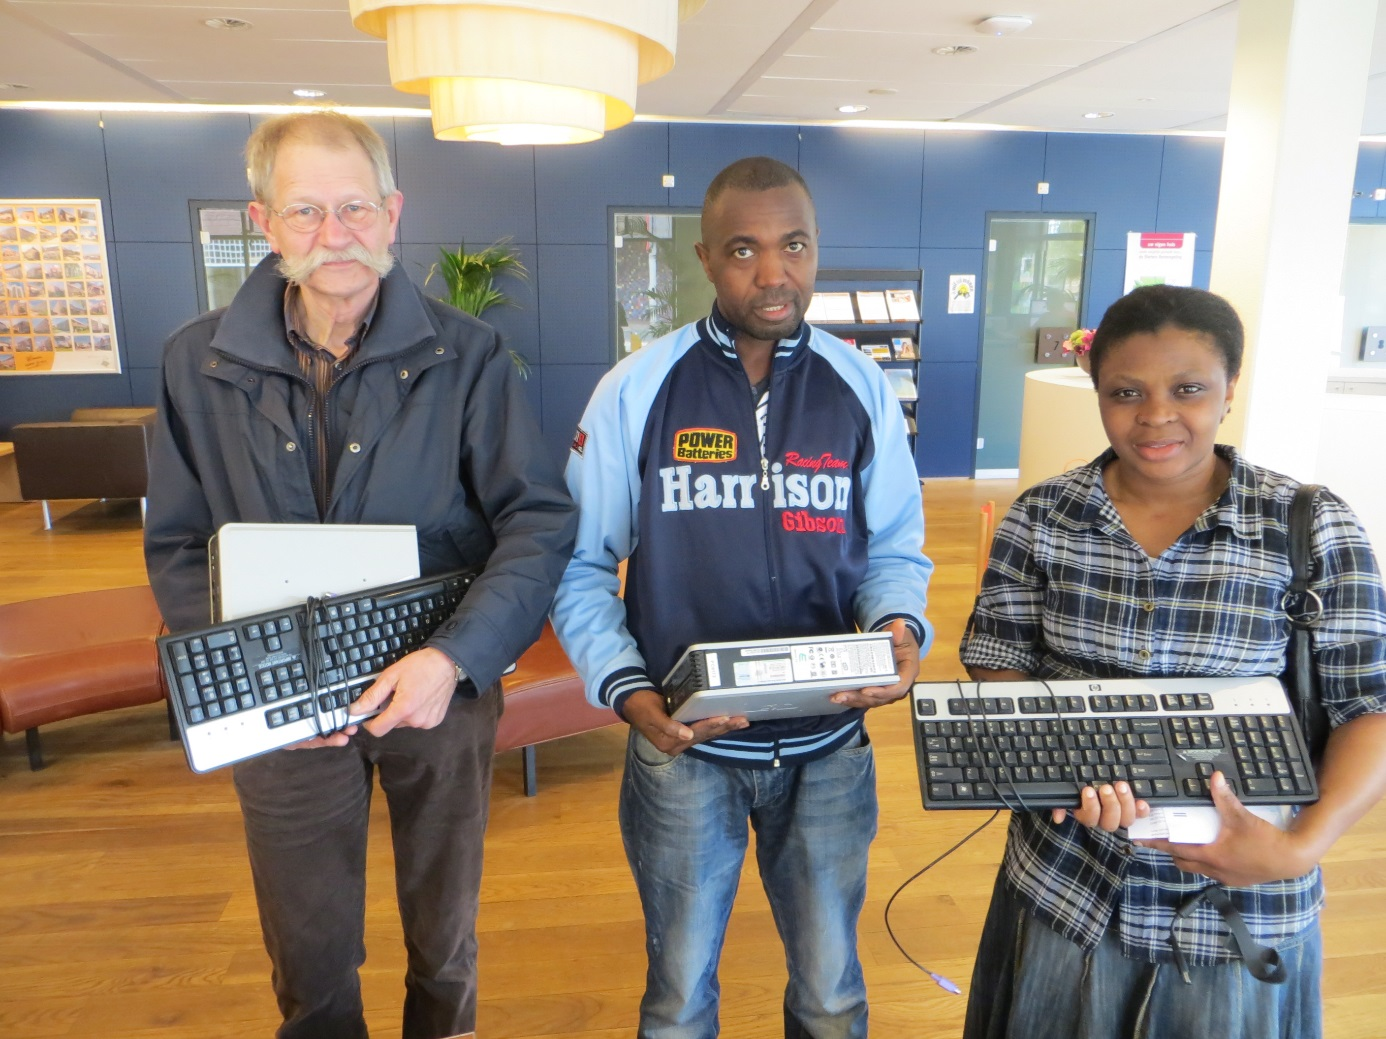 Woonstede en Waaijenberg schenken computers in Ede